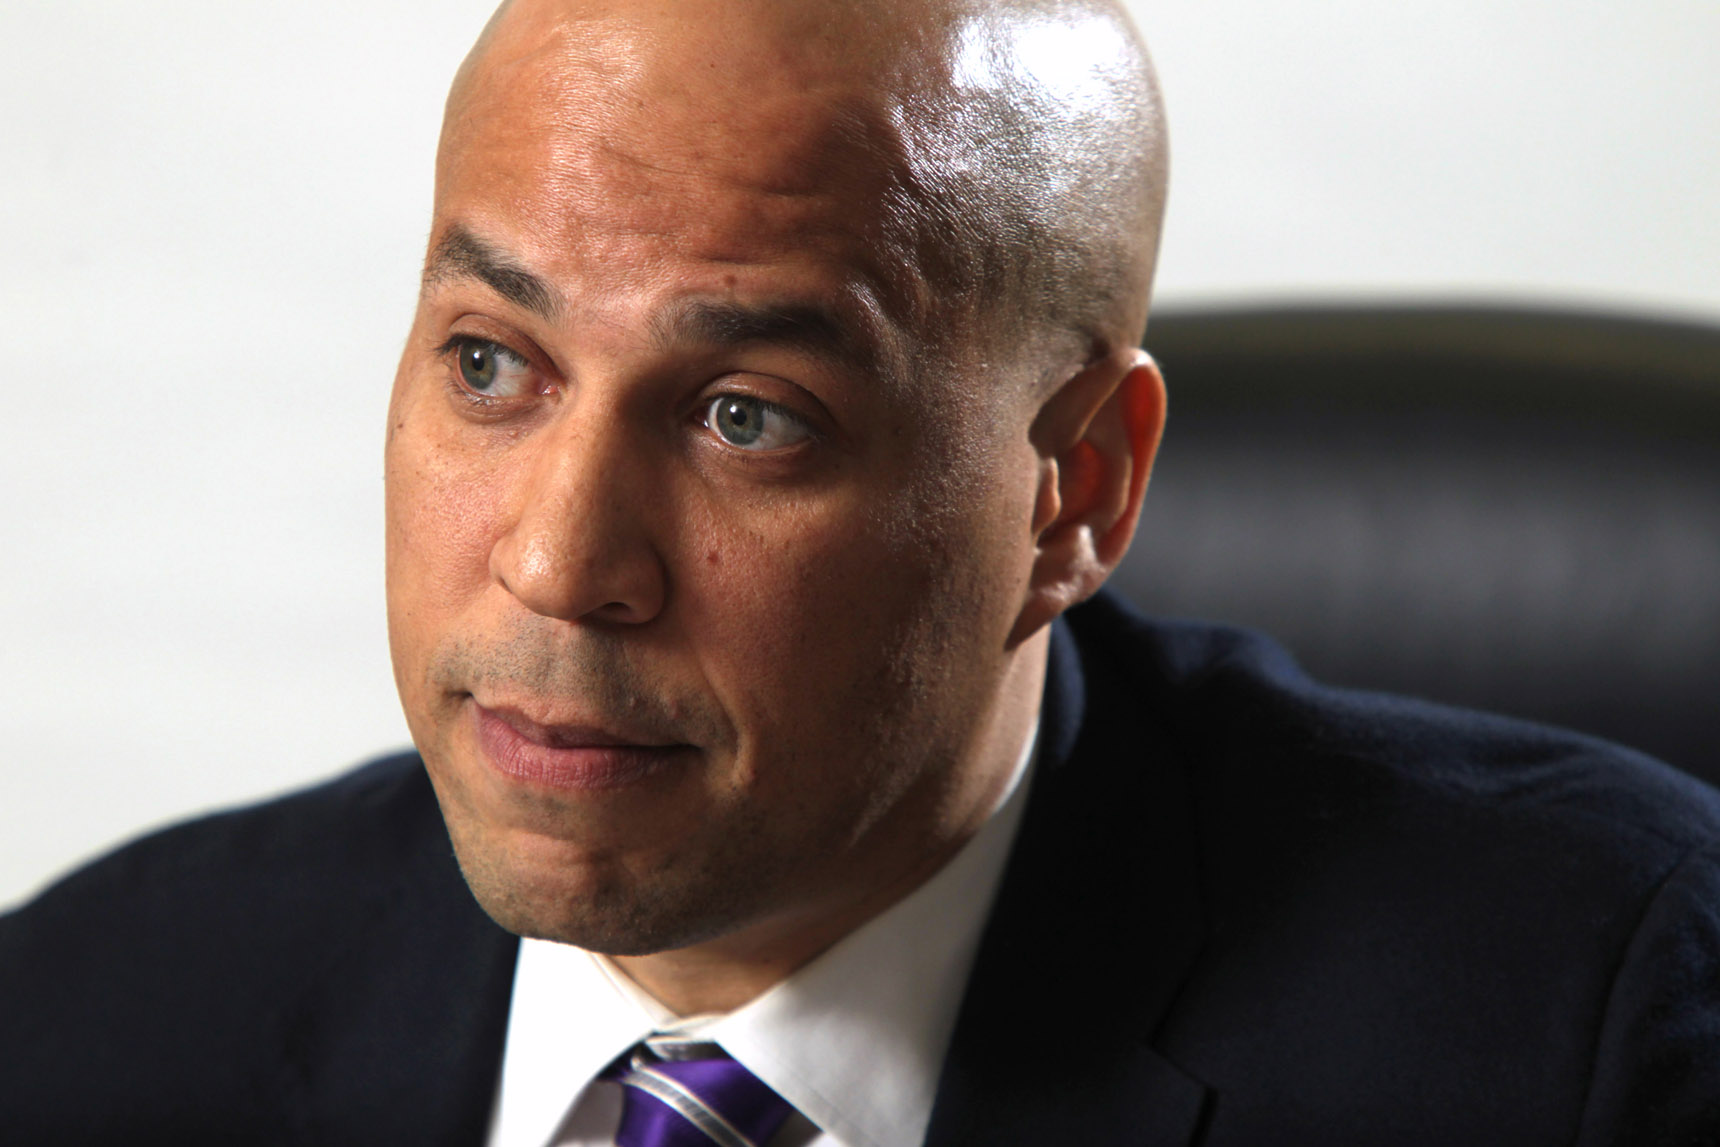 Portrait of Cory Booker